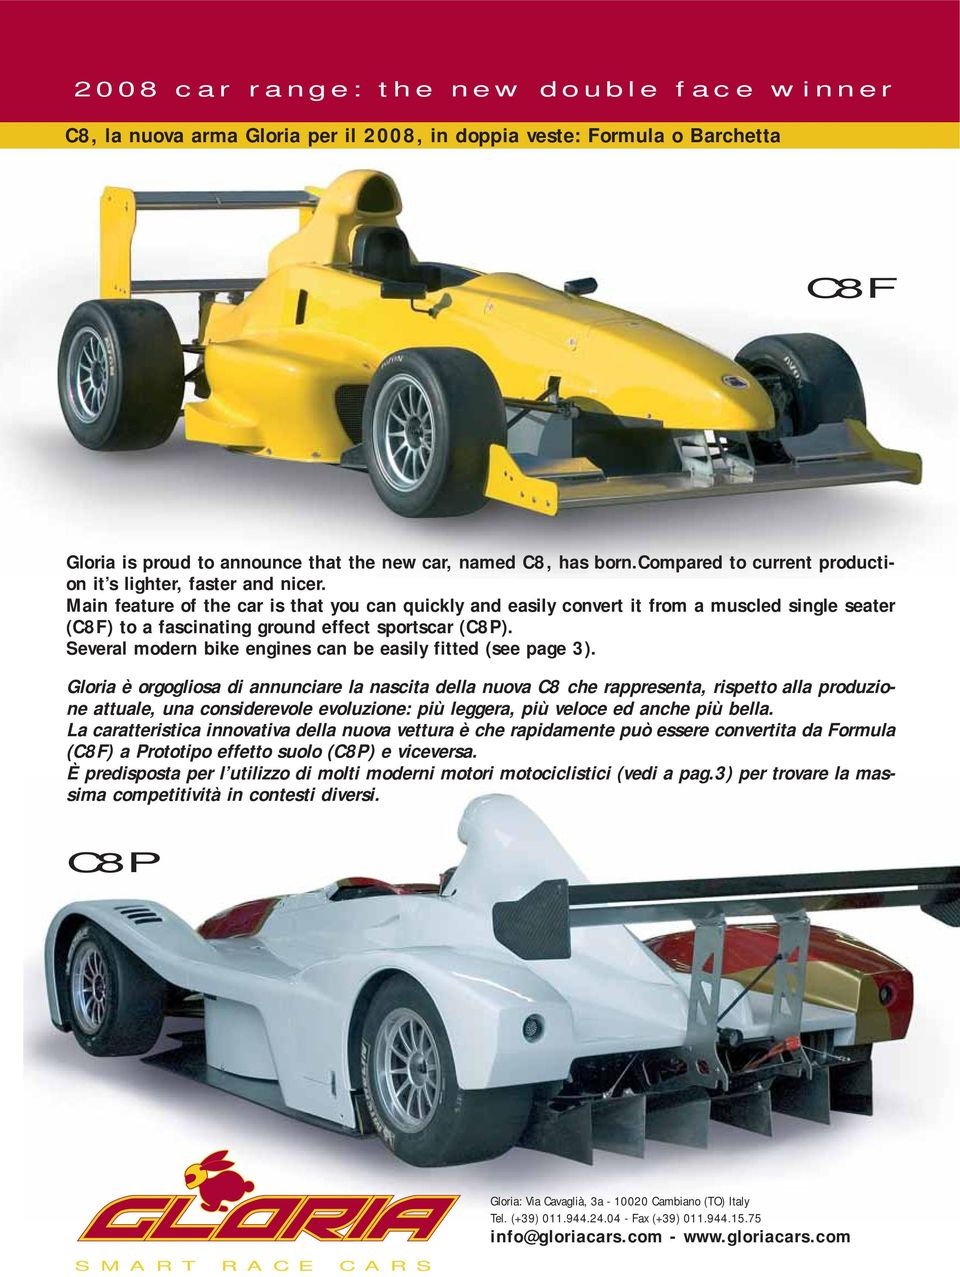 Main feature of the car is that you can quickly and easily convert it from a muscled single seater (C8F) to a fascinating ground effect sportscar (C8P).